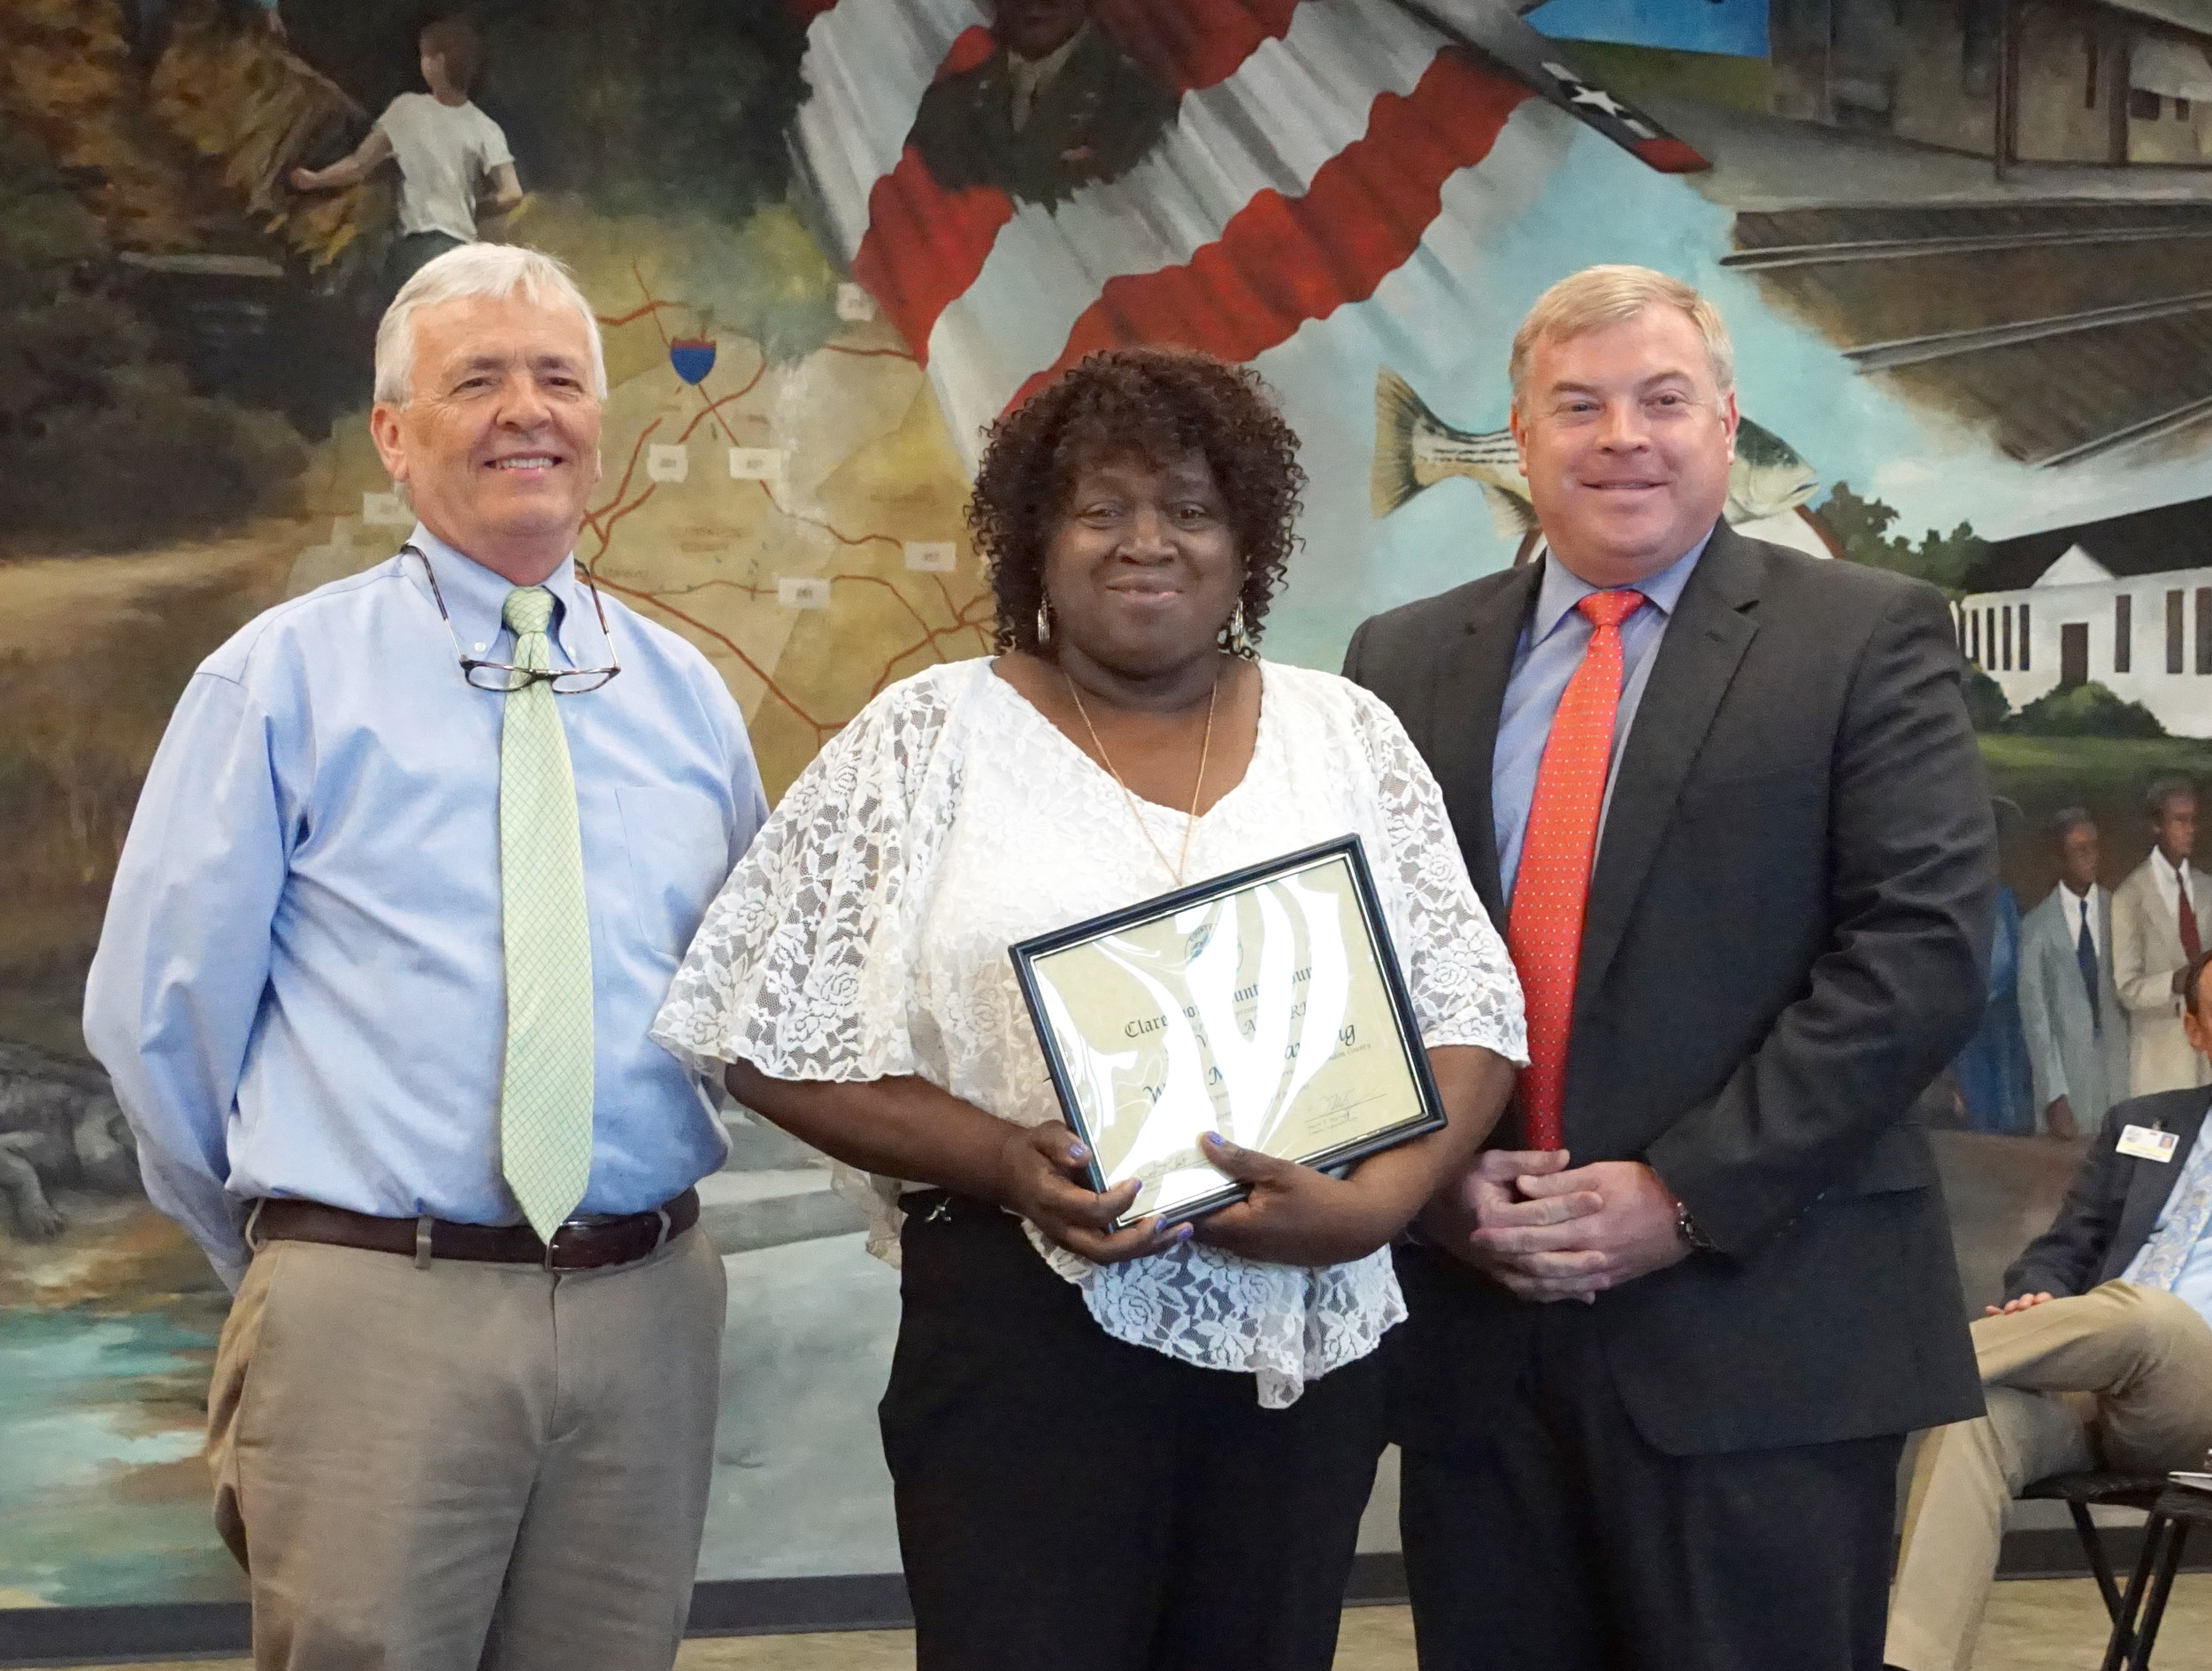 Willa Mae Manning, assistant supervisor with Clarendon County Communications E-911, receives a certificate and clock in recognition of her 25 years of service from Clarendon County Council Chairman Dwight Stewart and County Administrator David Epperson.